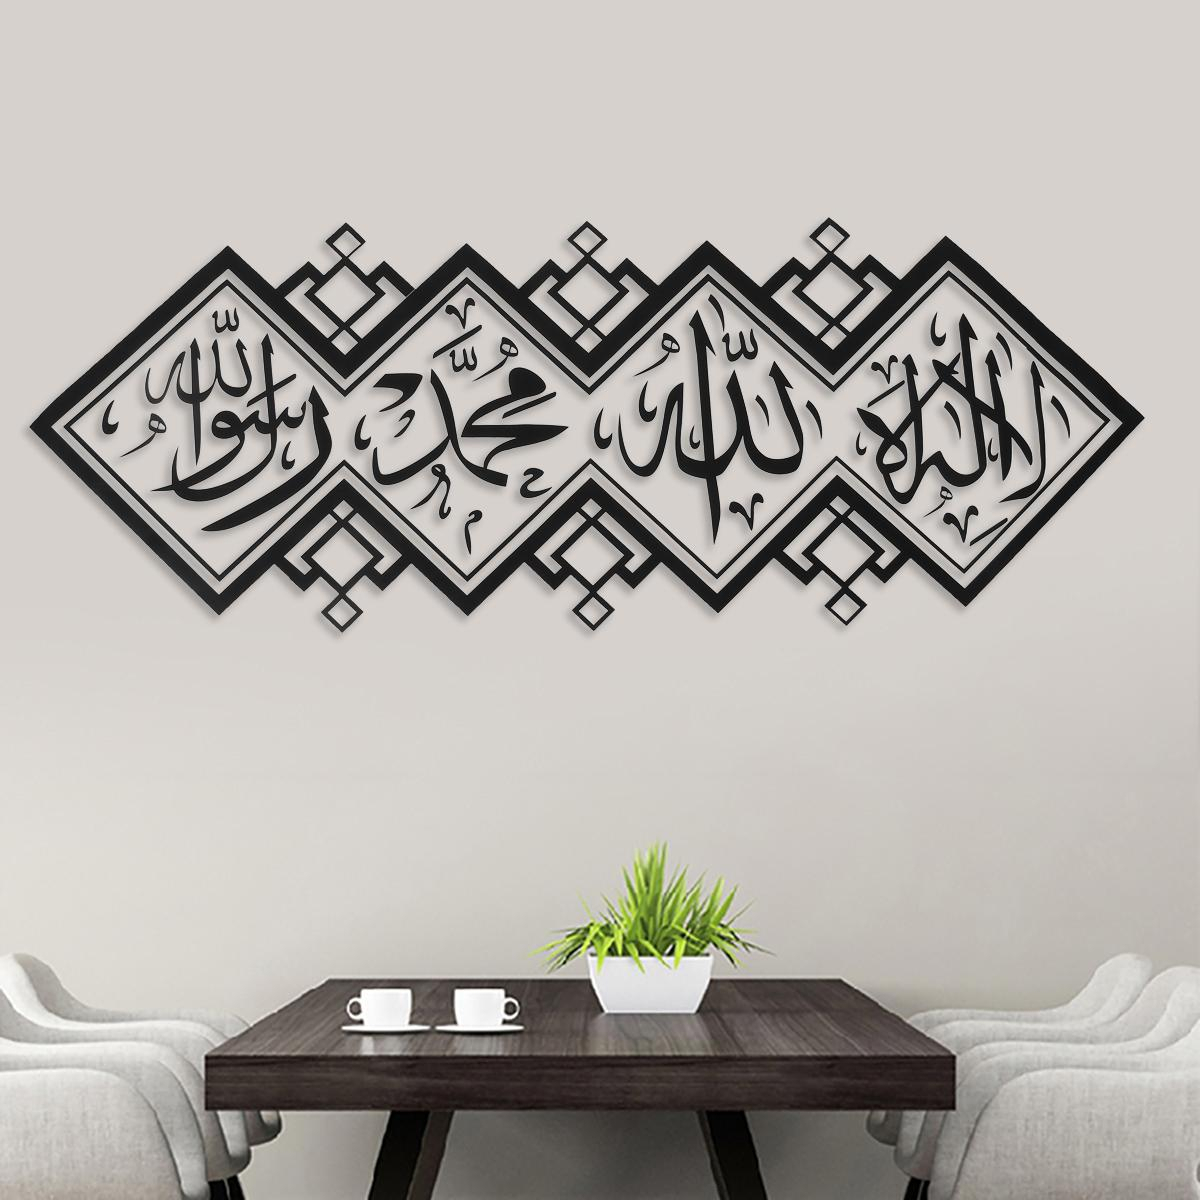 【Freeshipping+Superdeal+Limitedoffer】120*44Cm Wall Stickers Calligraphy Wall Art Decal Kalimah With Regard To Casual Country Eat Here Retro Wall Decor (View 30 of 30)